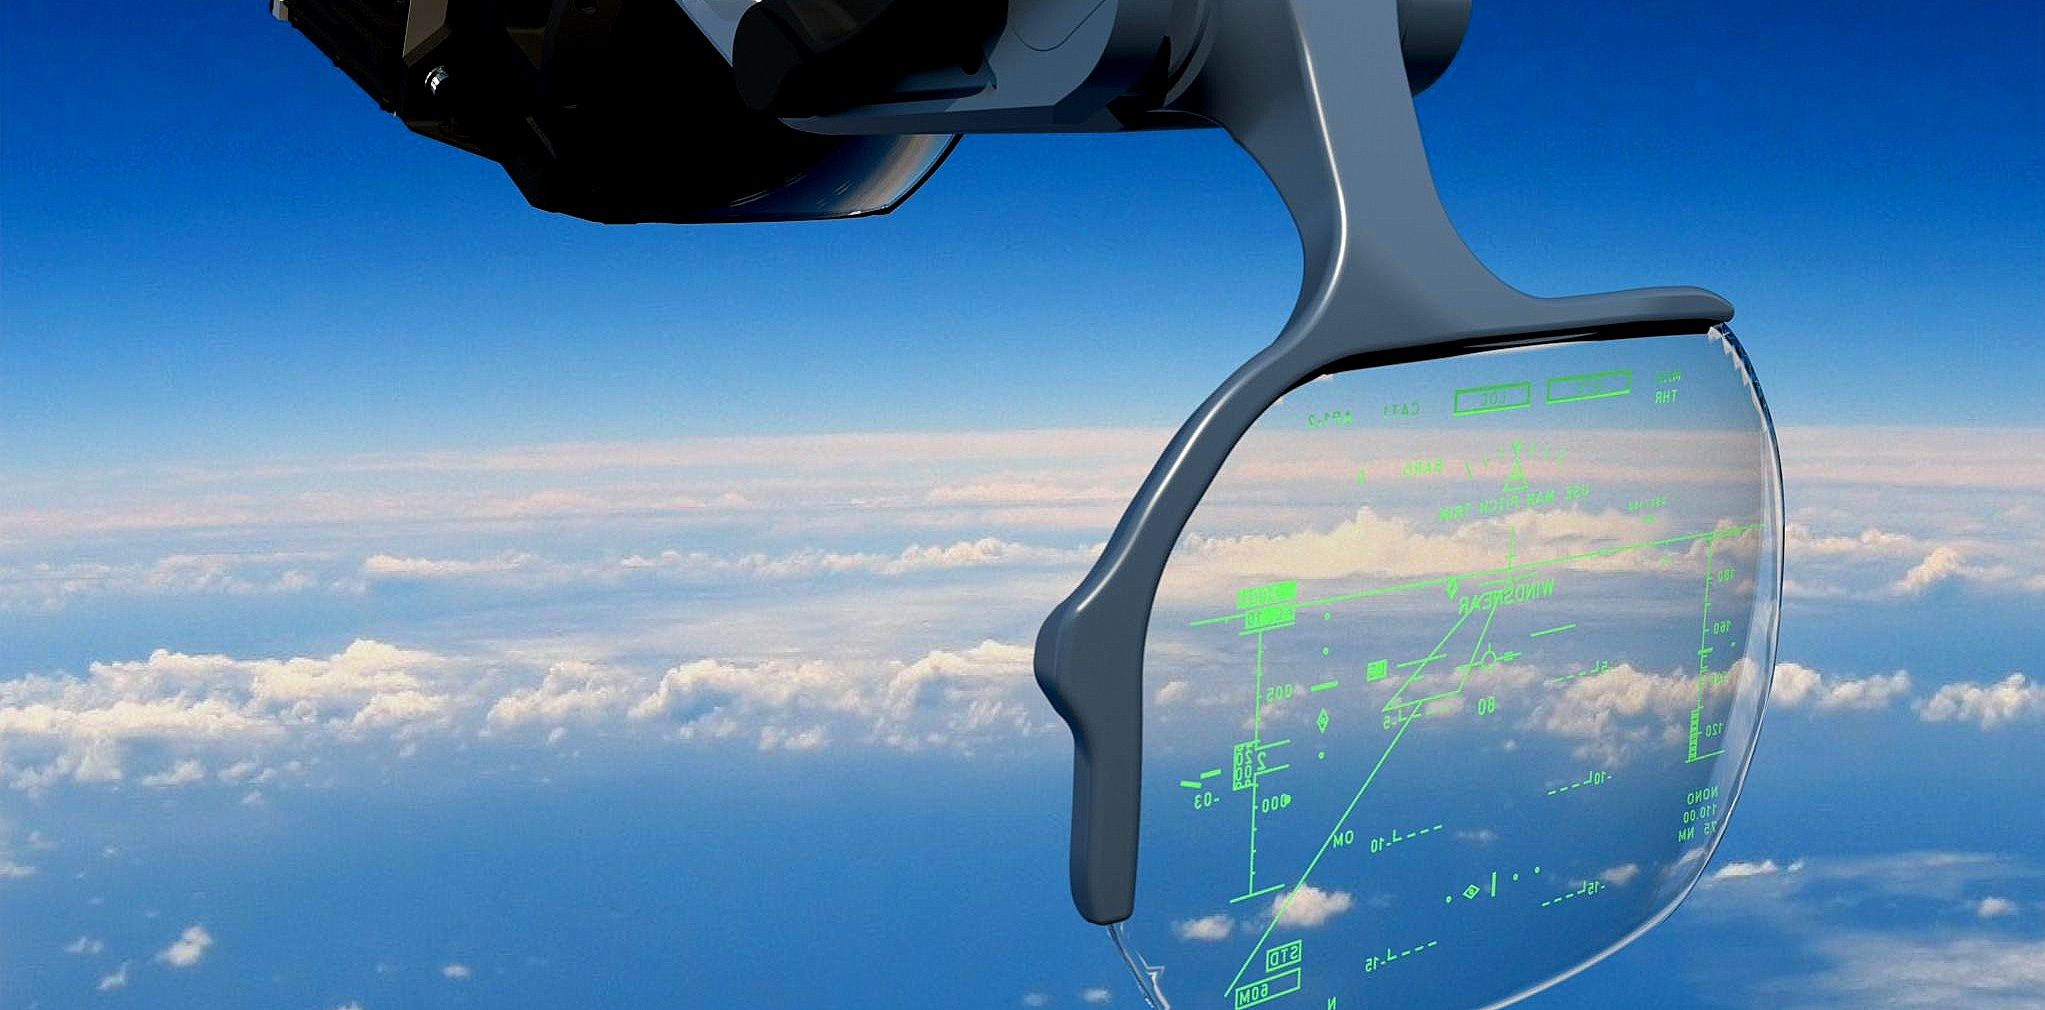 Thales selected on over 130 aircraft in China with its HUD system in 2016